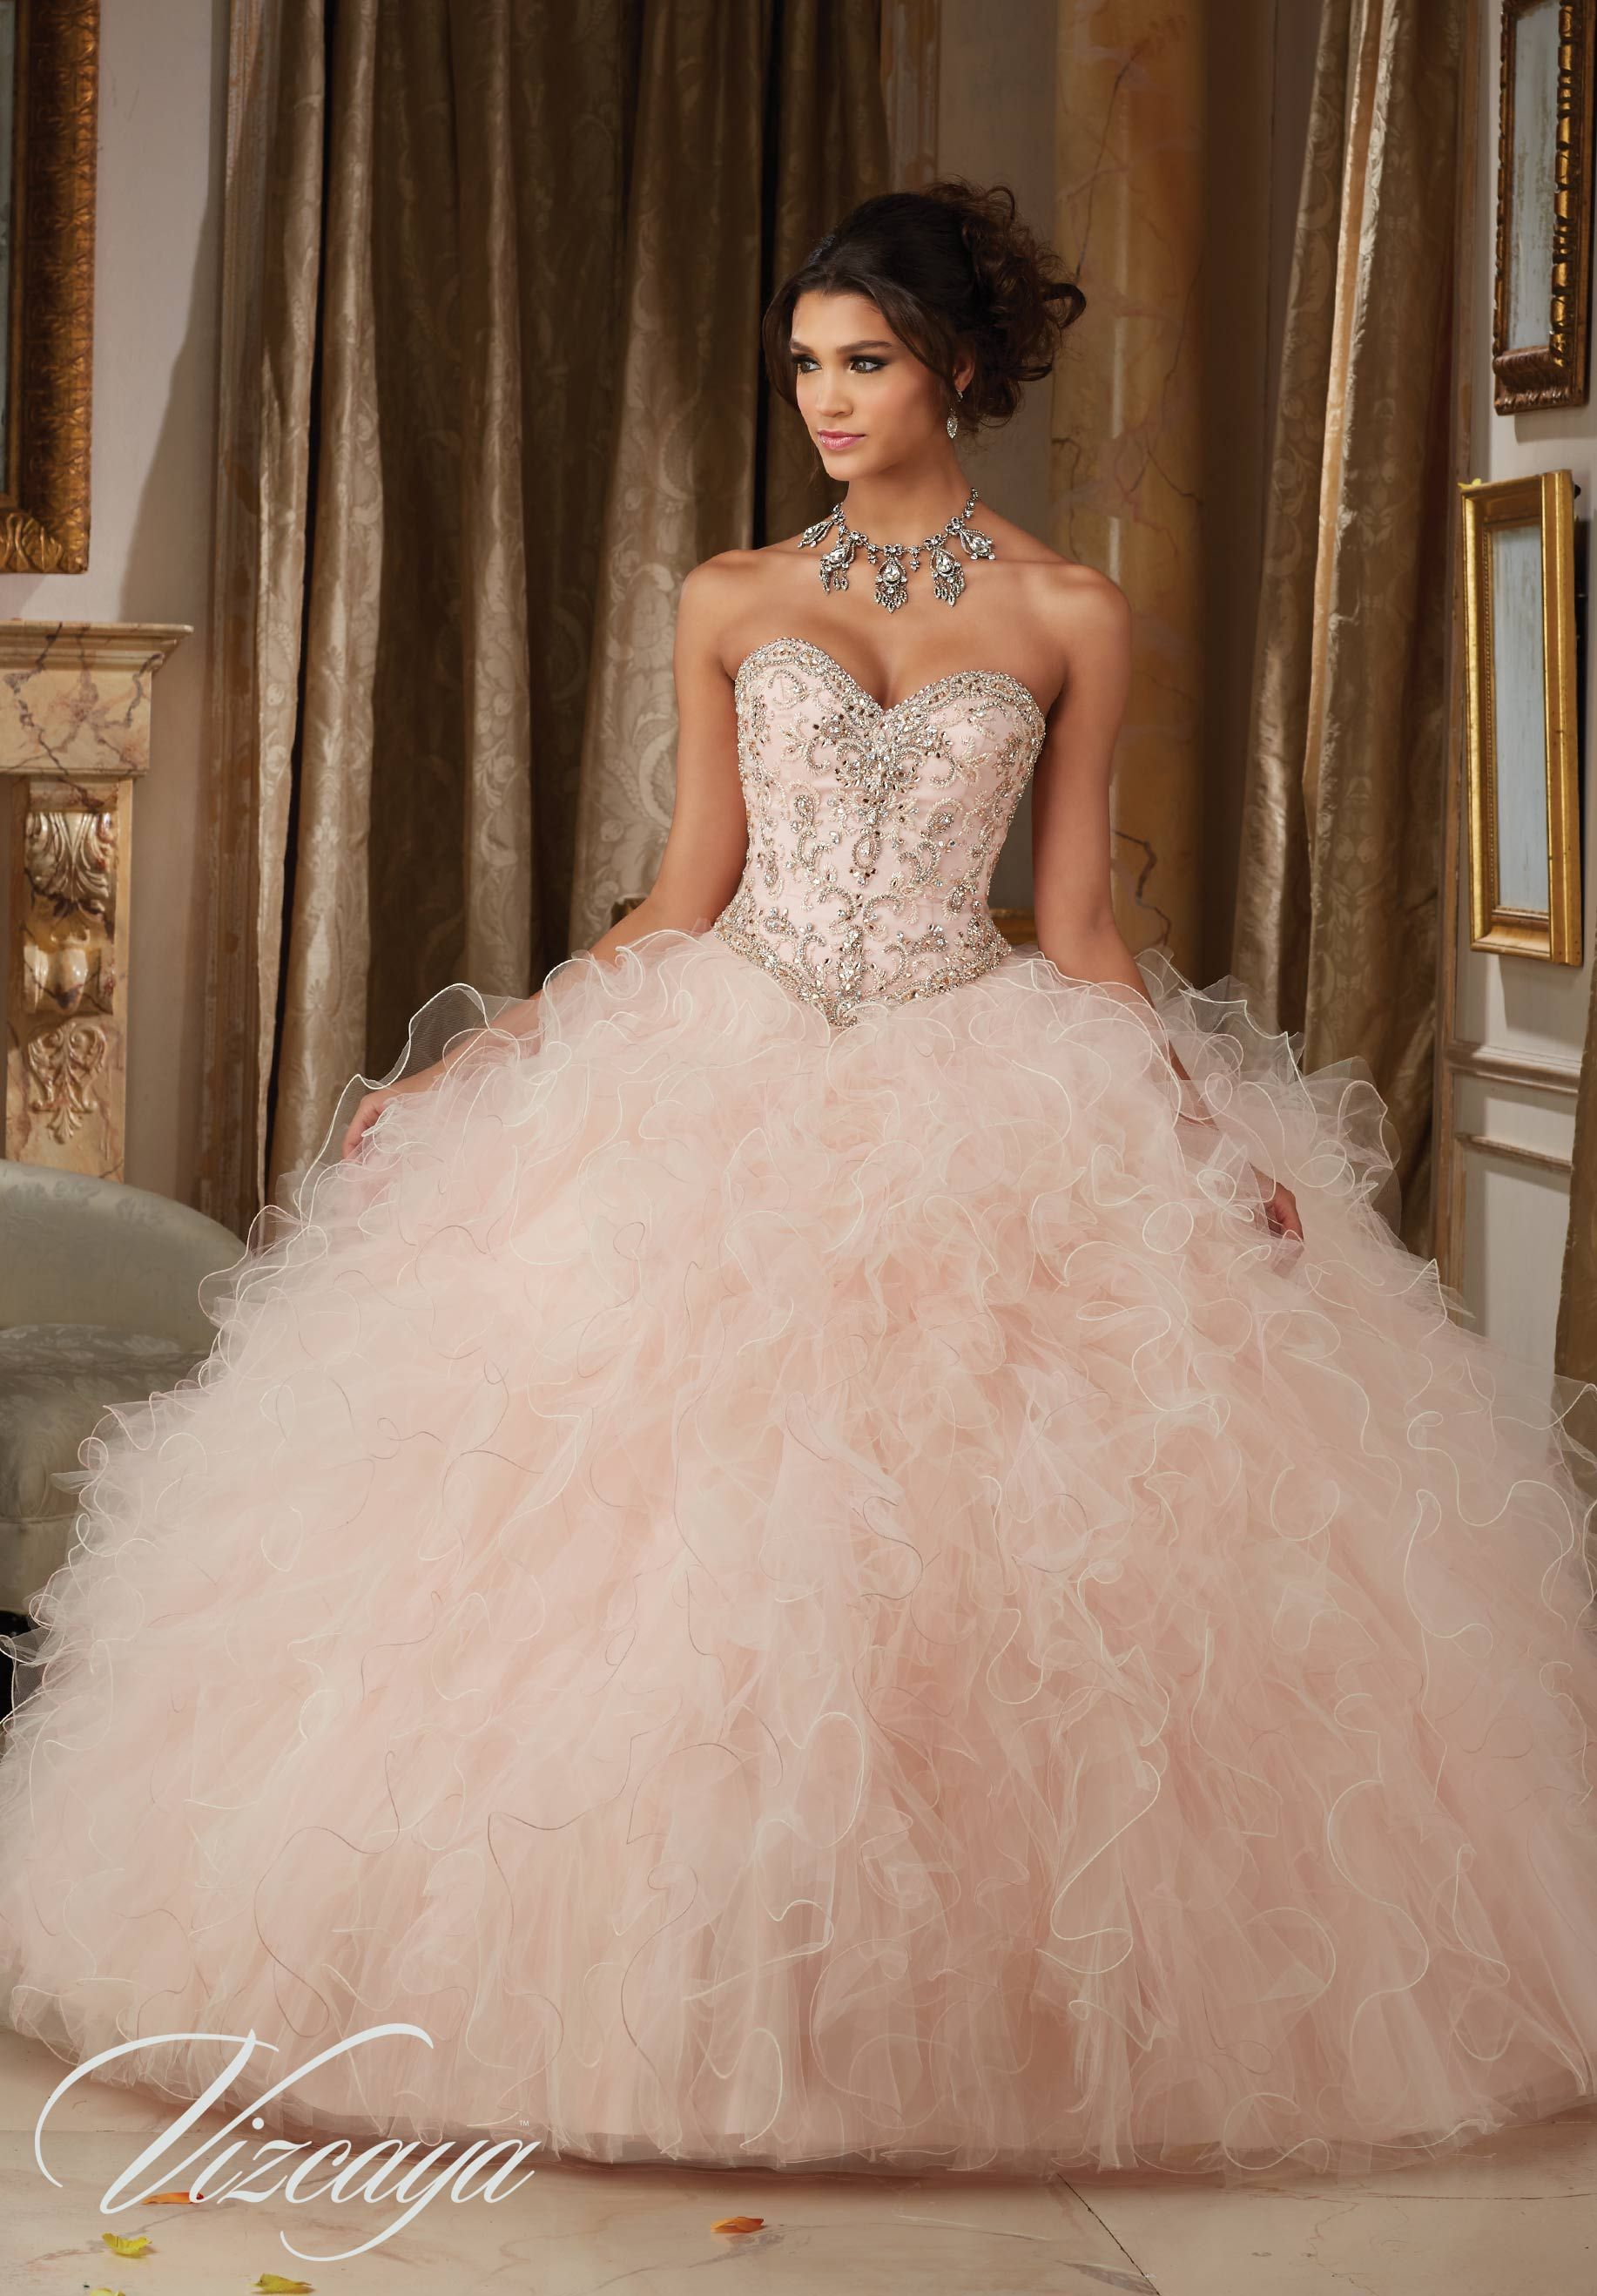 Tulle Quinceañera Ballgown. Sweetheart Neckline with Beading and Corset  Back. Colors Available  Champagne Blush 8a8bf119fe48